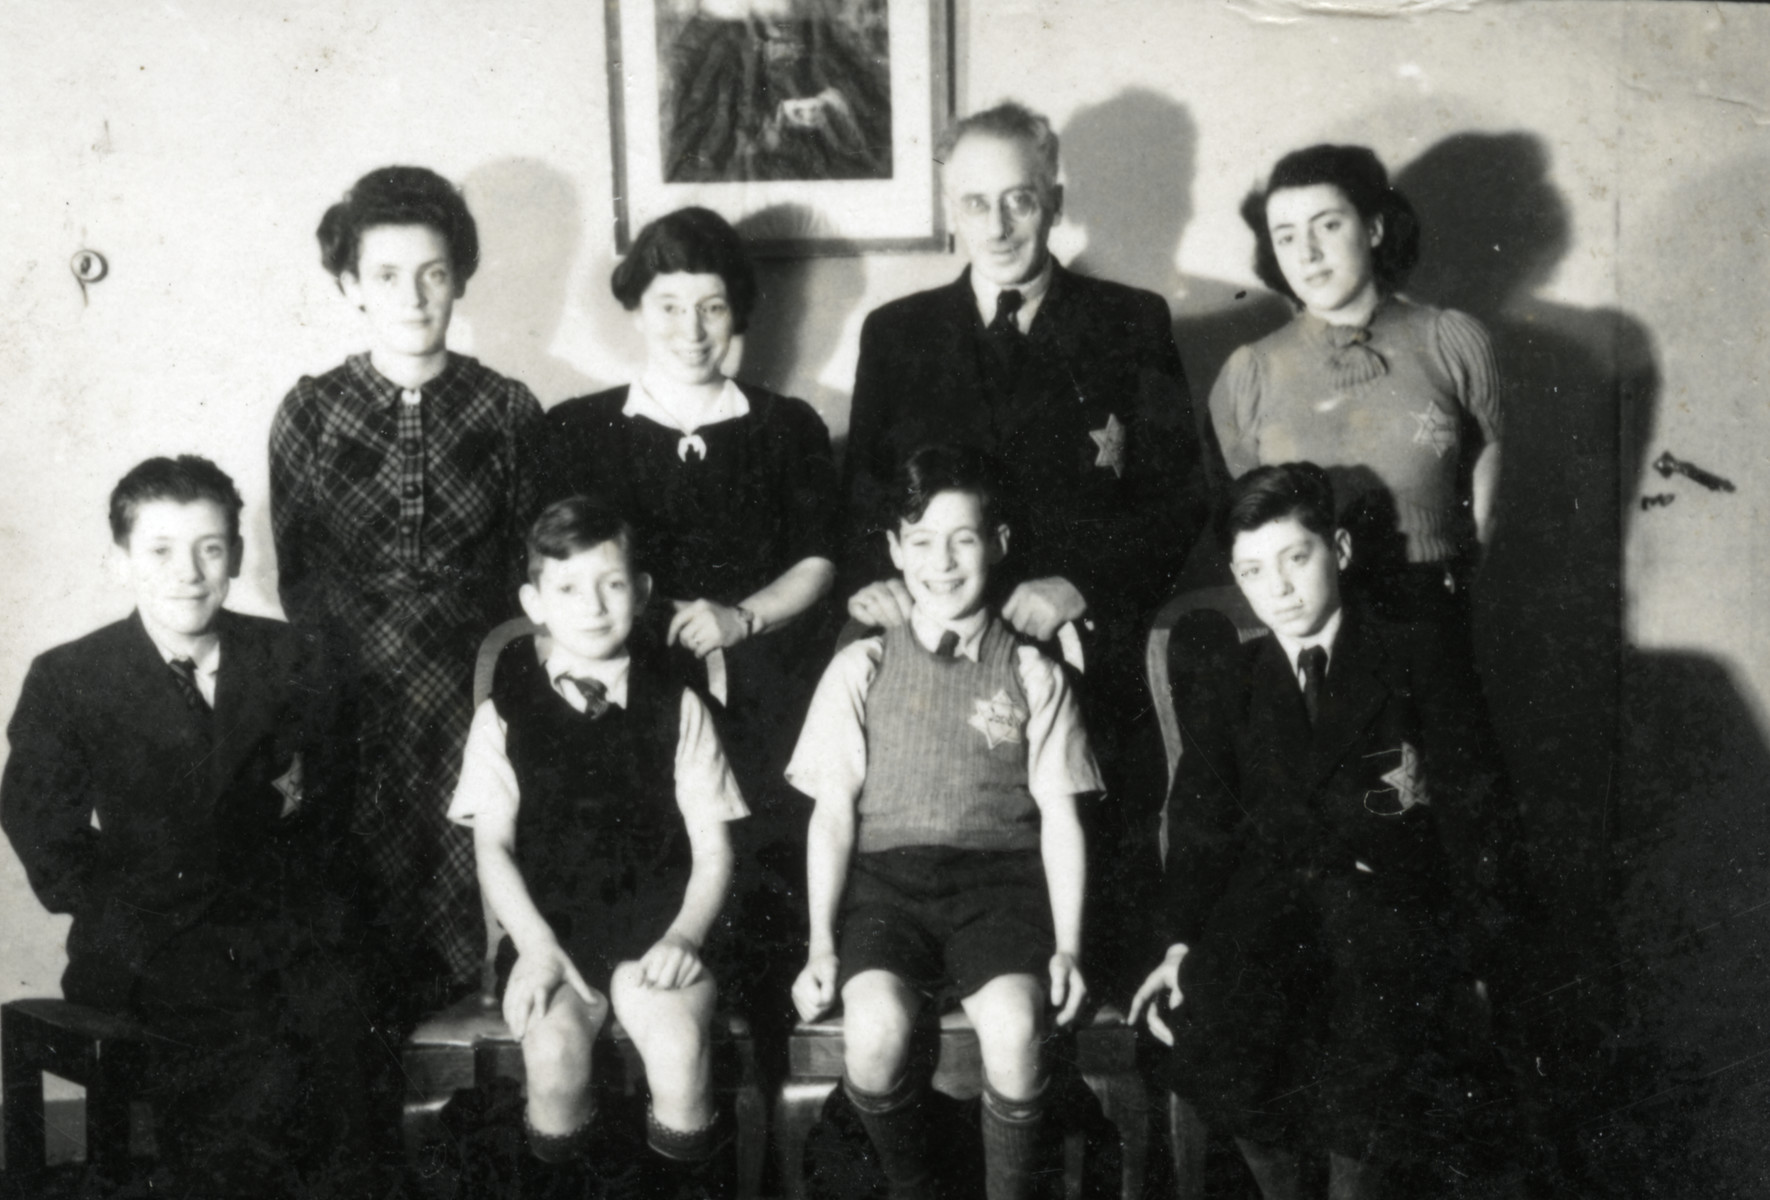 Wartime portrait of the Roet family taken shortly before the two daughters were deported and killed.   Seated from left to right are Josef, Haim, Aaron and Avraham Roet.  Standing are Adela, Johanna, Shlomo Pinchas and Rozinna Roet.